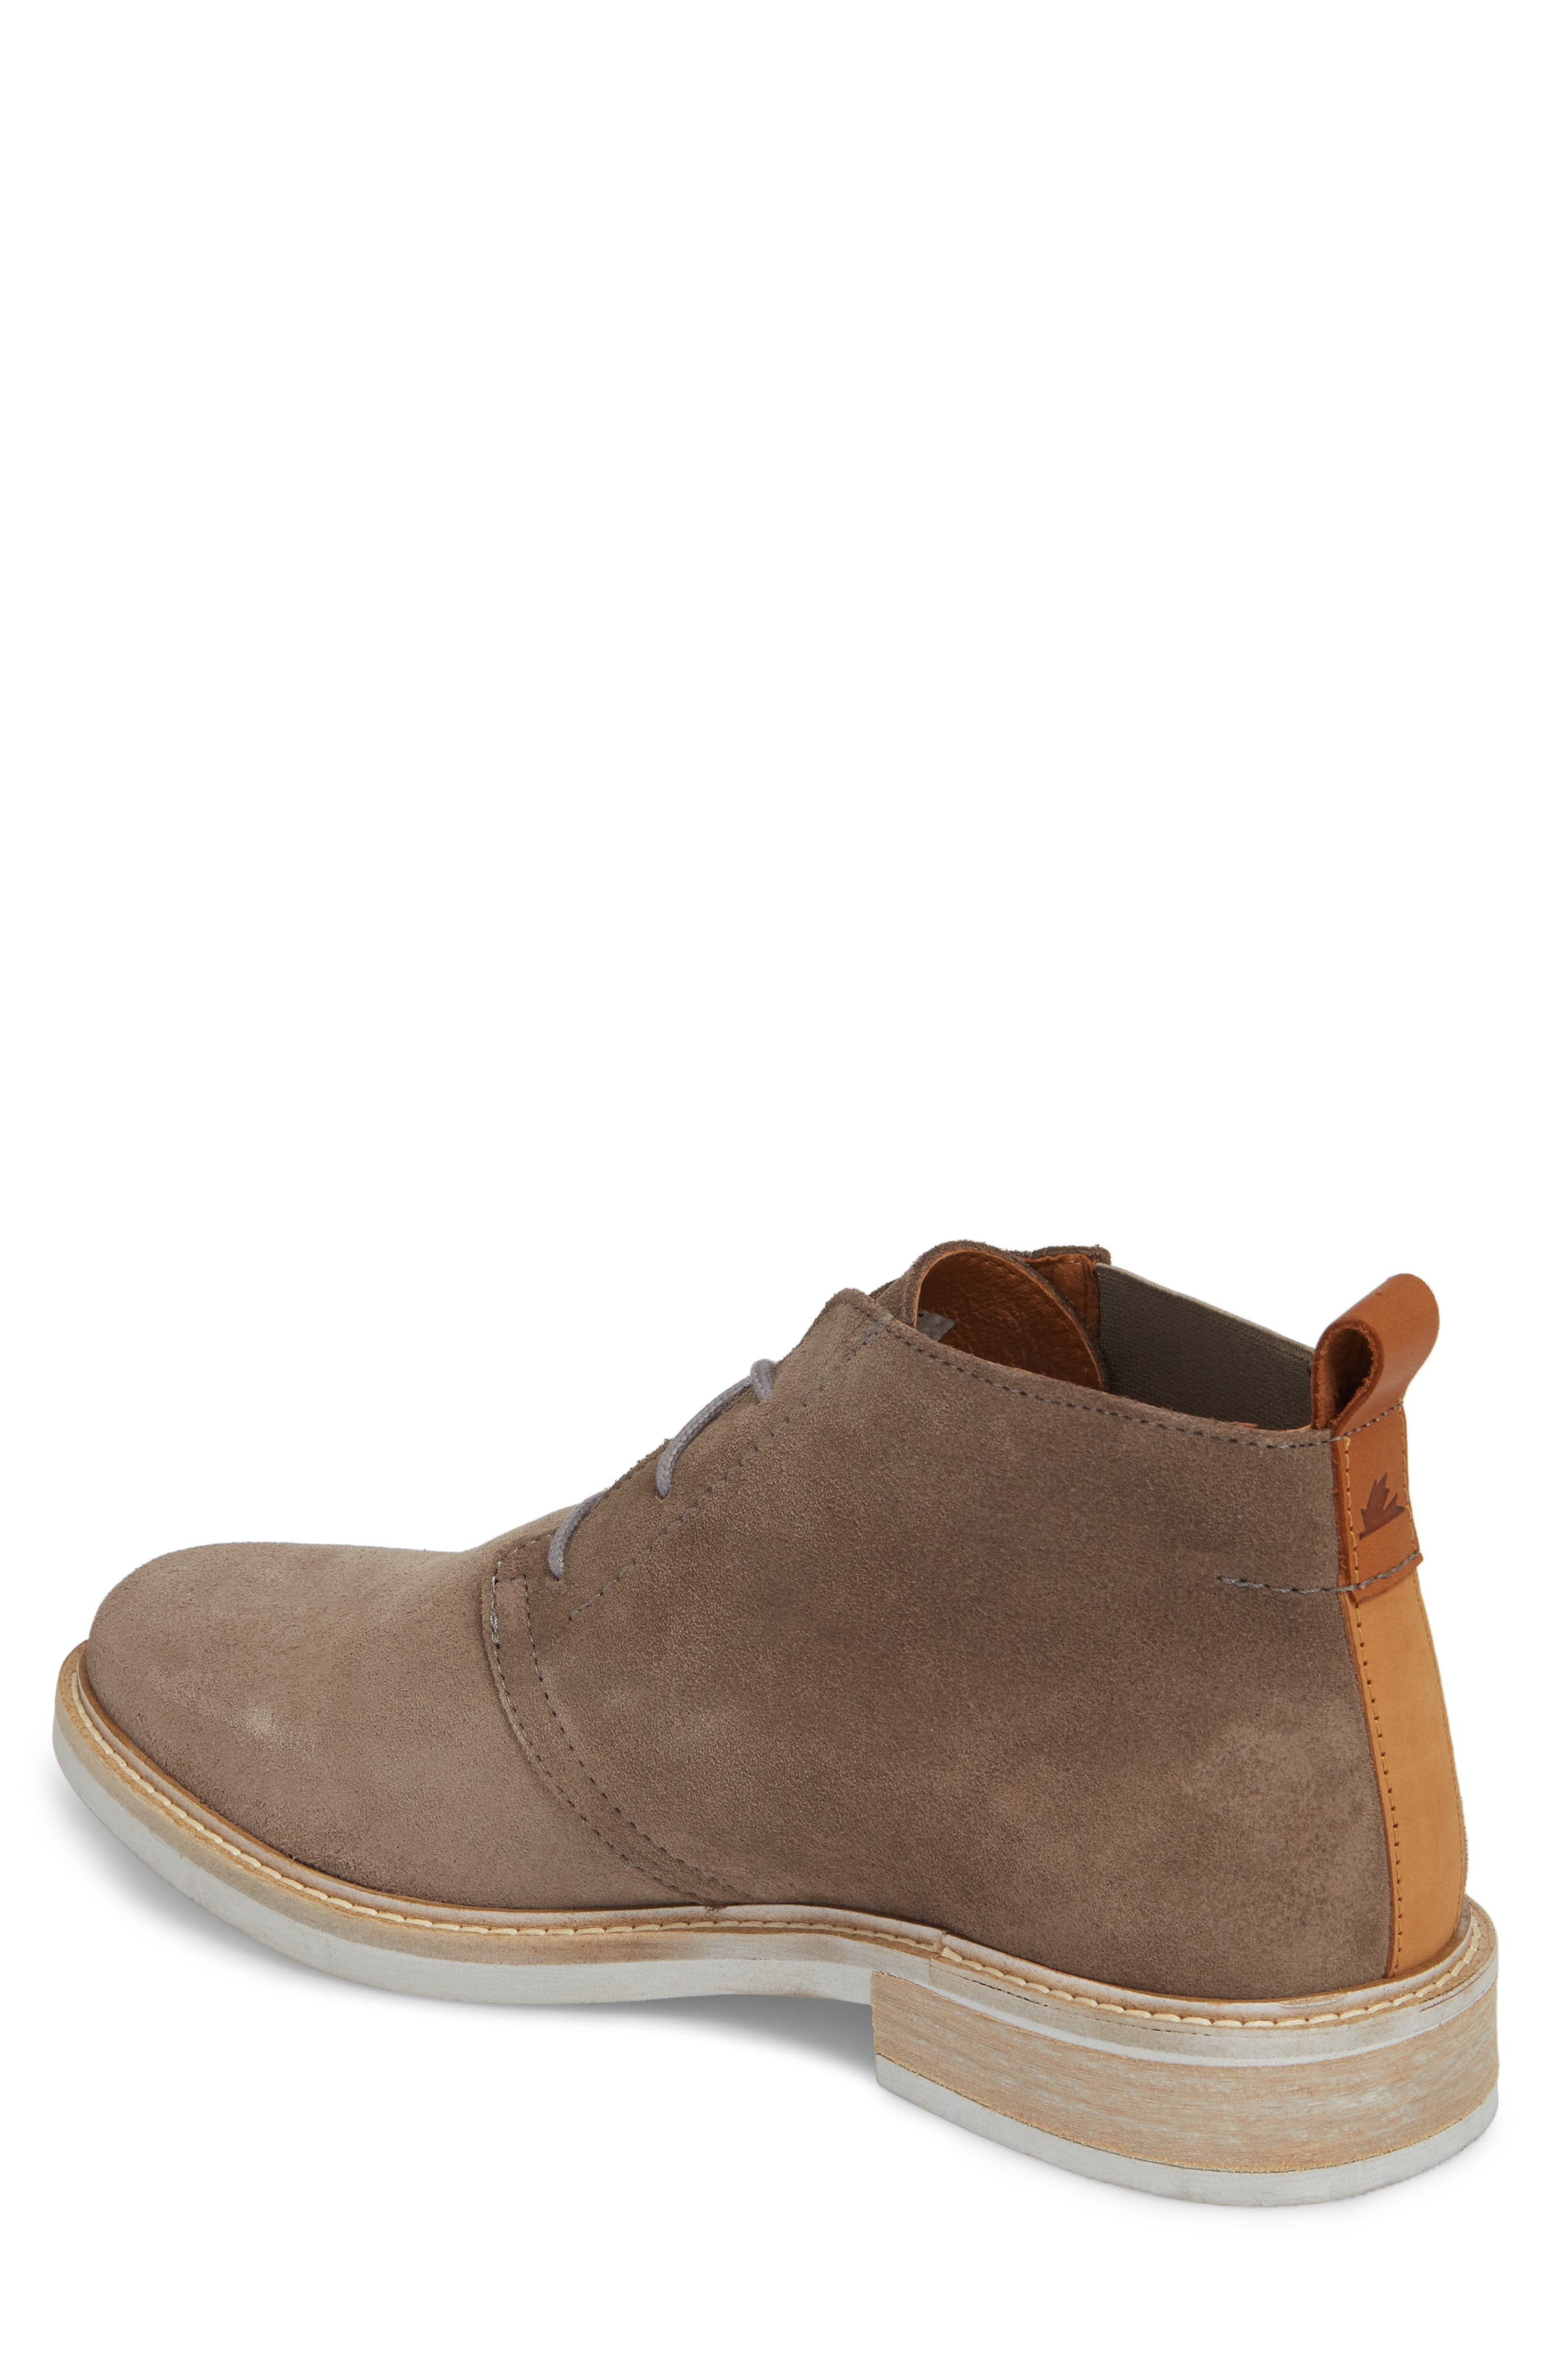 Jameson Water Resistant Chukka Boot,                             Alternate thumbnail 2, color,                             ANTHRACITE